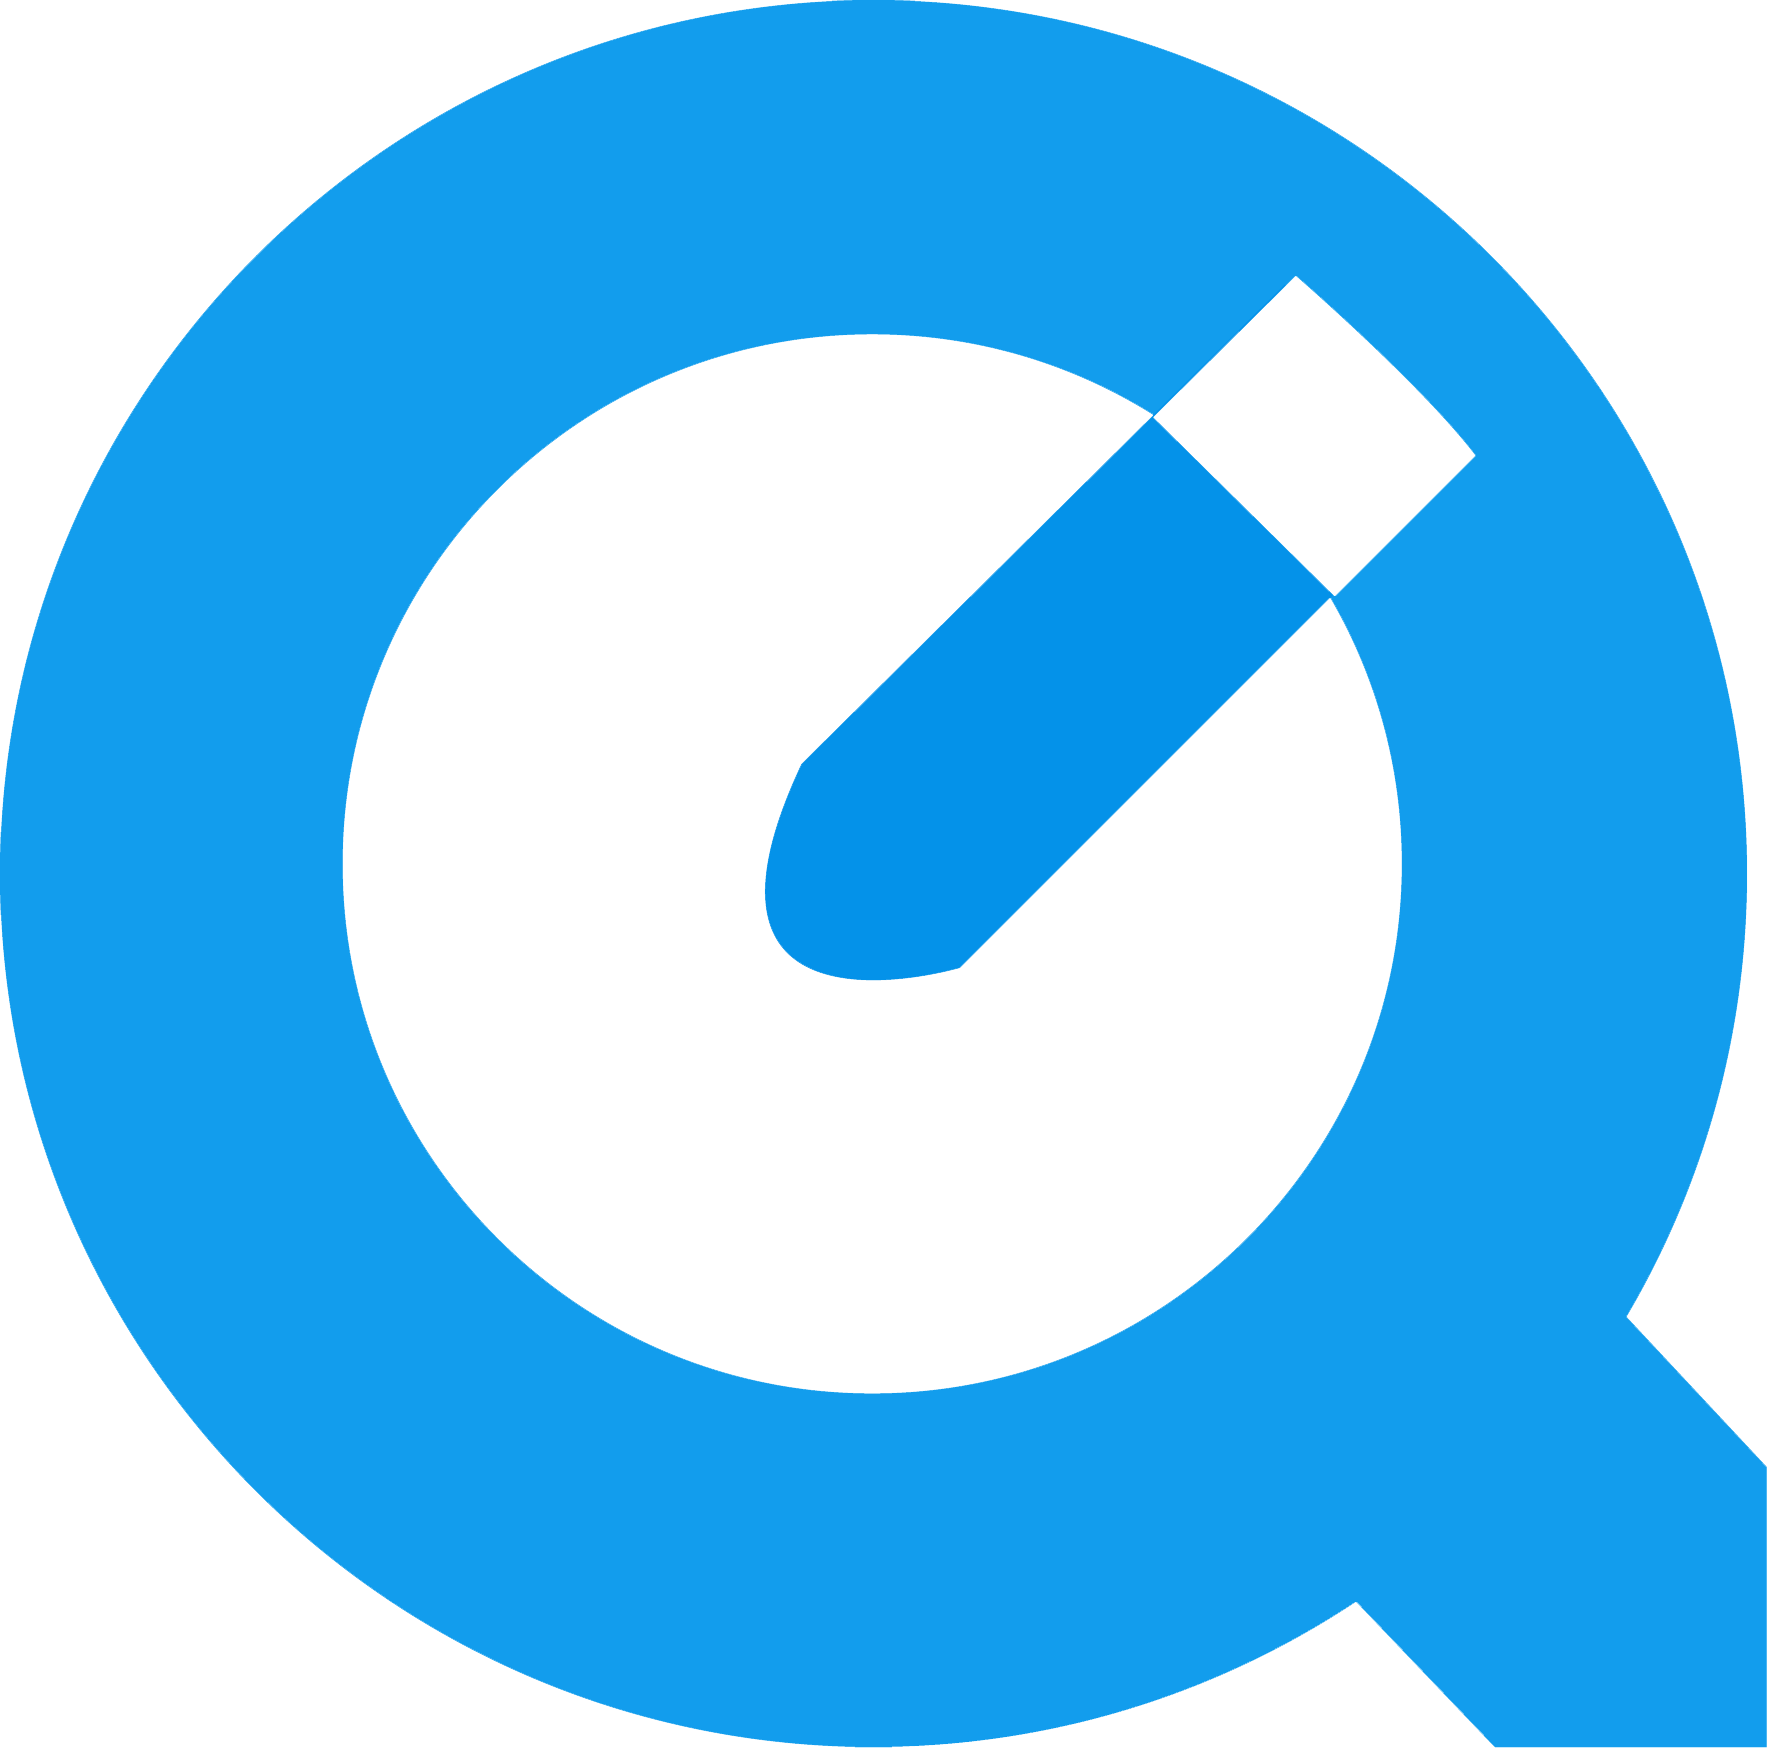 Shocking: Apple Decides To End QuickTime.